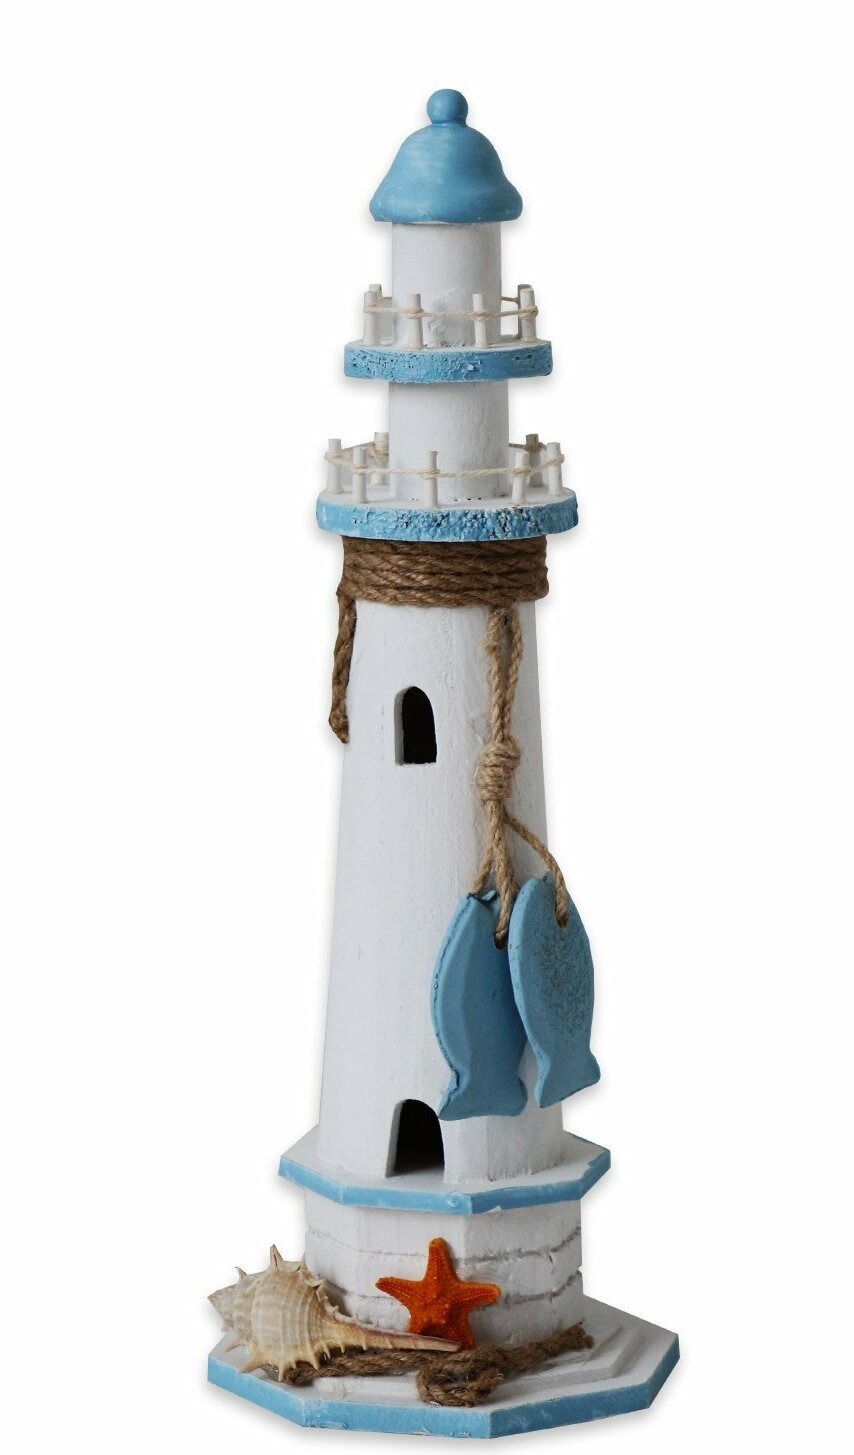 Nautical Wooden Lighthouse Sea Theme Sculpture Home Living Room Decor Crafts